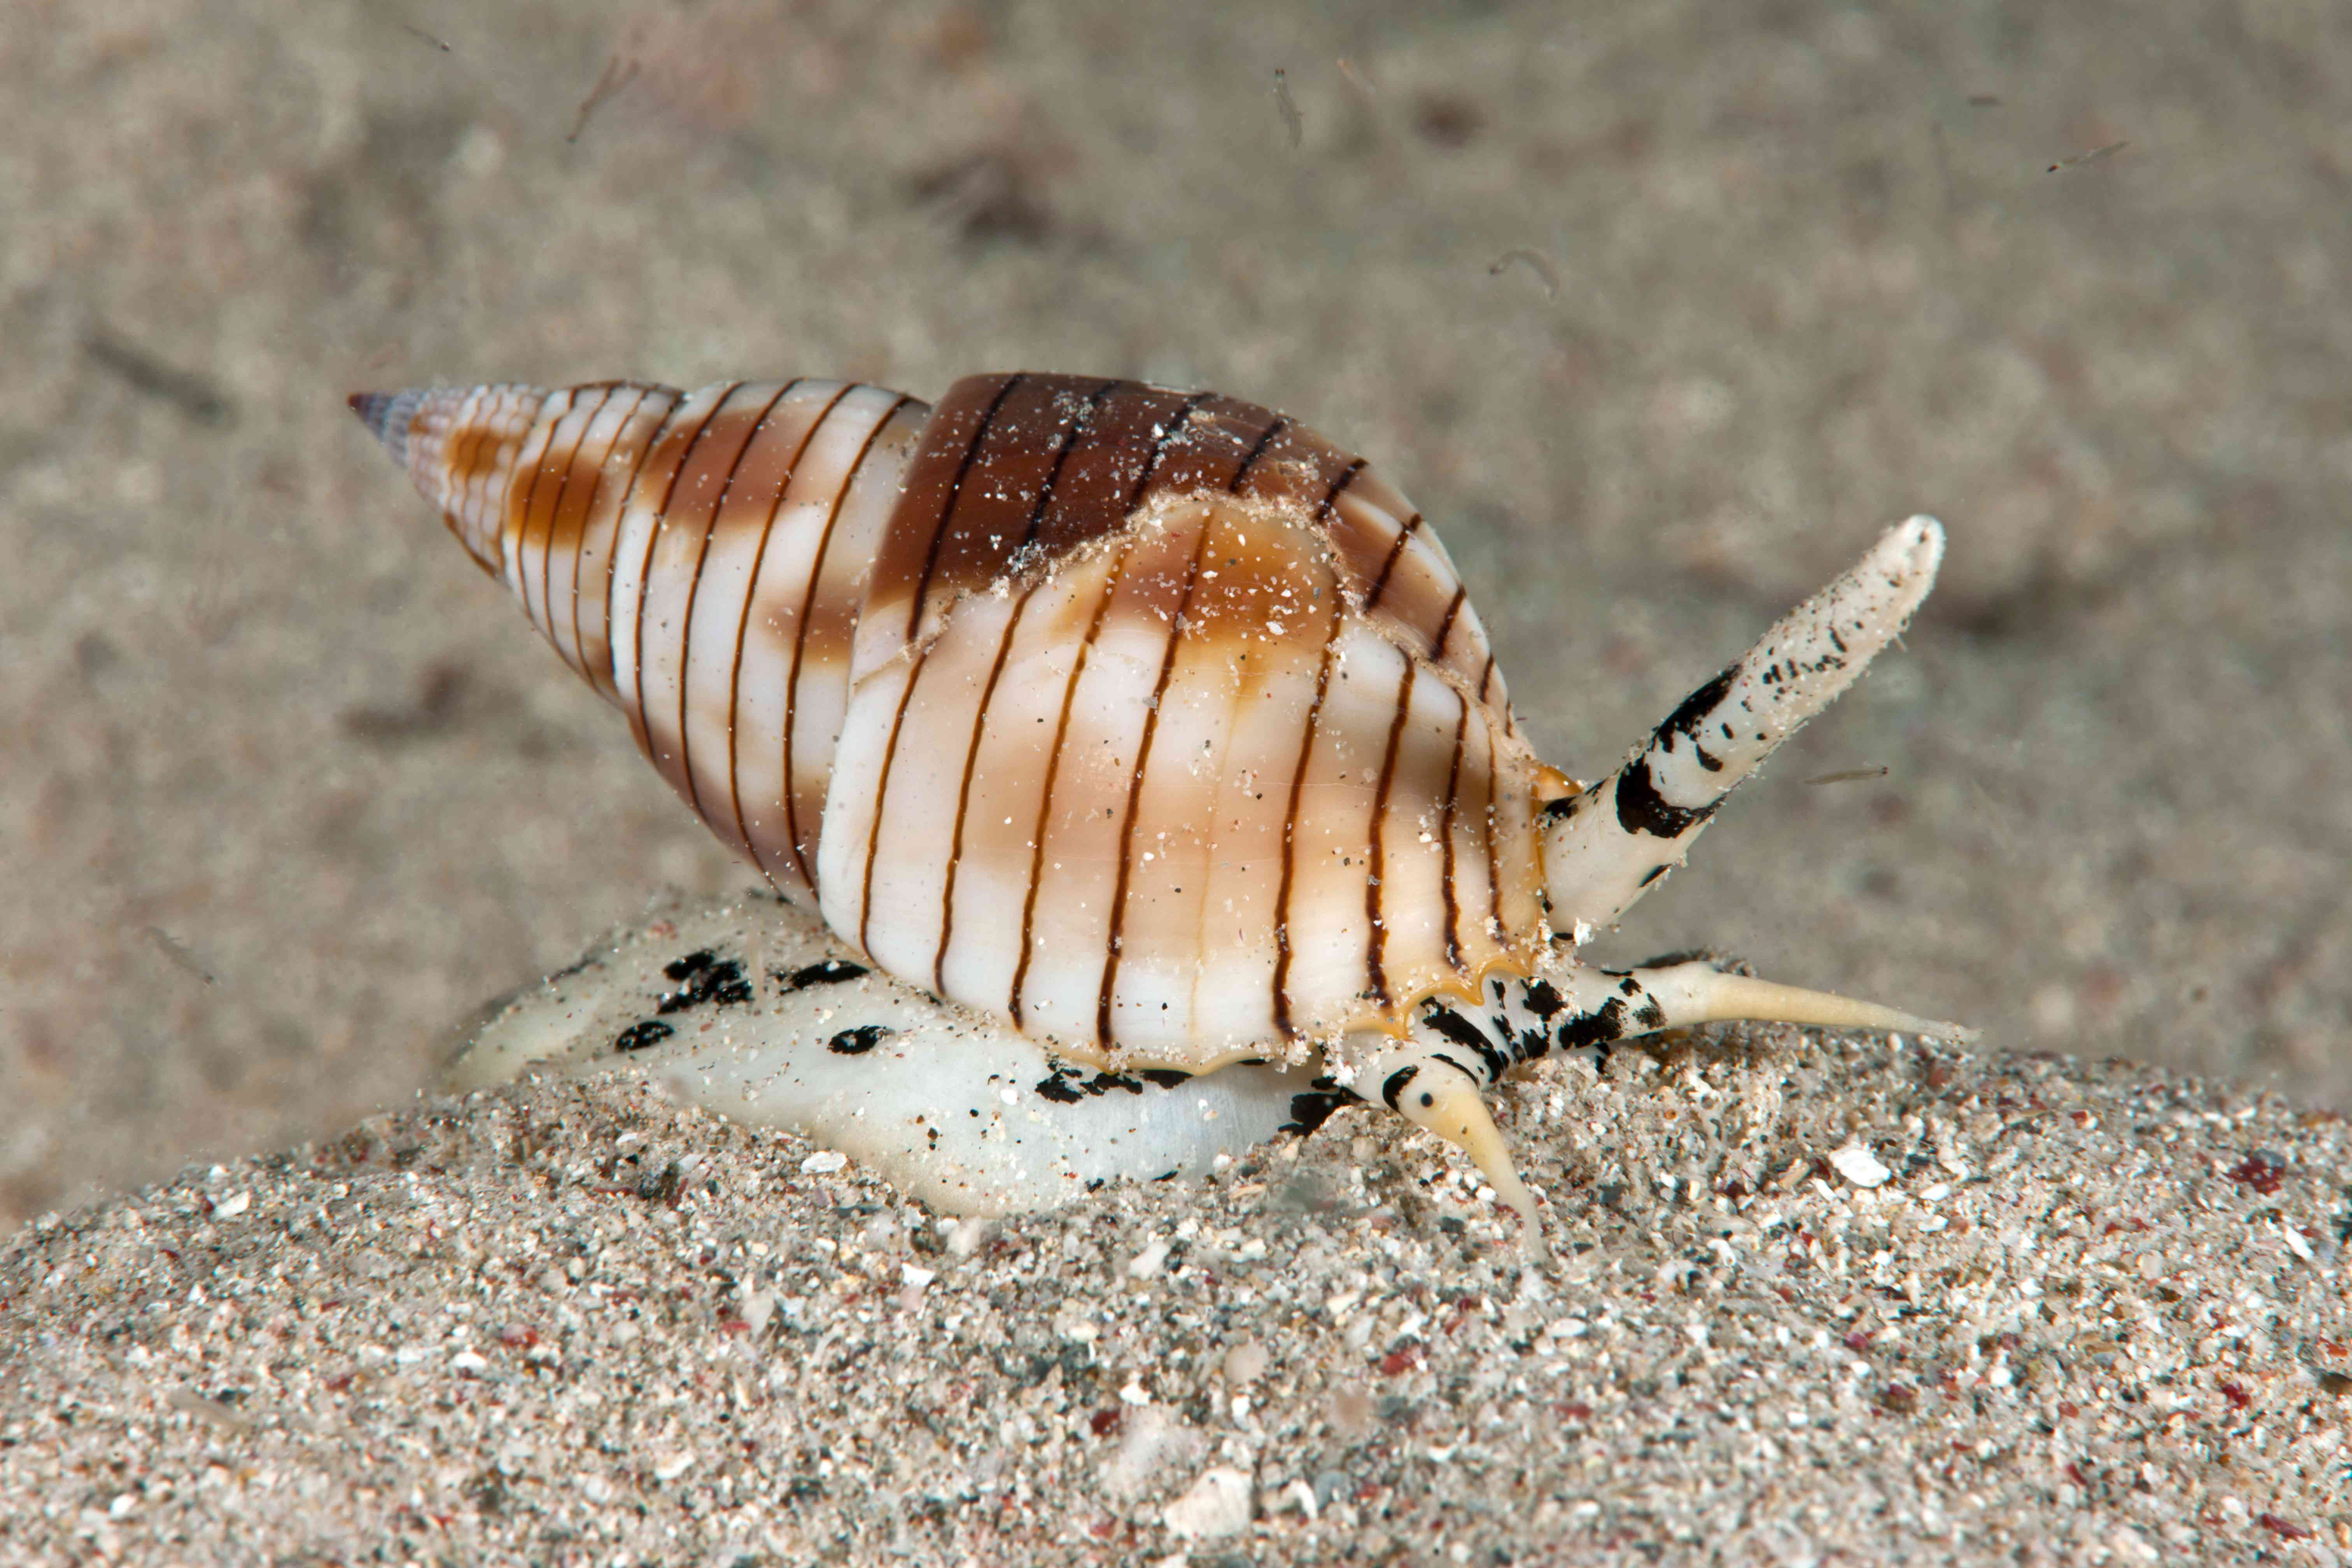 The dog whelk or mud snail, from the nassarius family of sand sifting snails